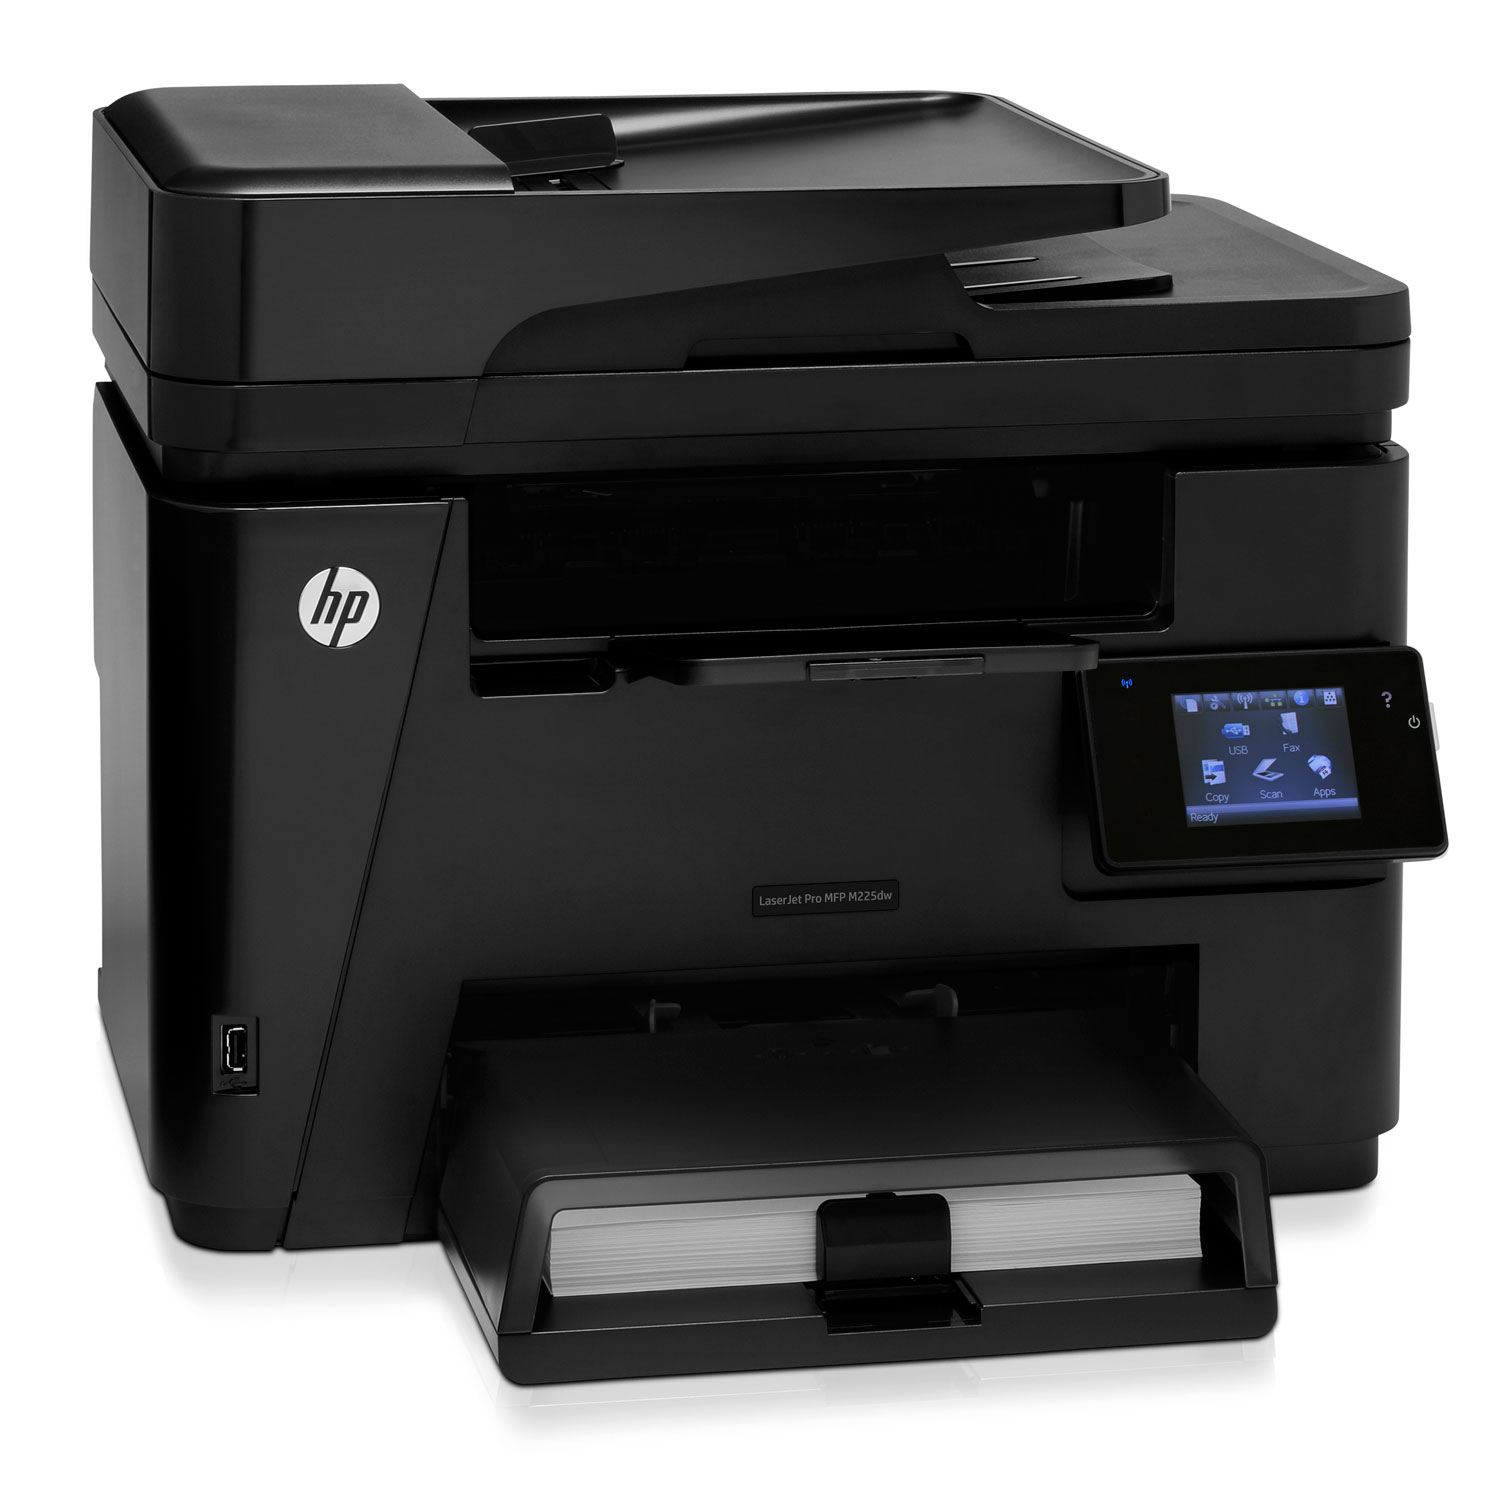 hp laserjet pro mfp m225dw imprimante multifonction hp sur ldlc. Black Bedroom Furniture Sets. Home Design Ideas